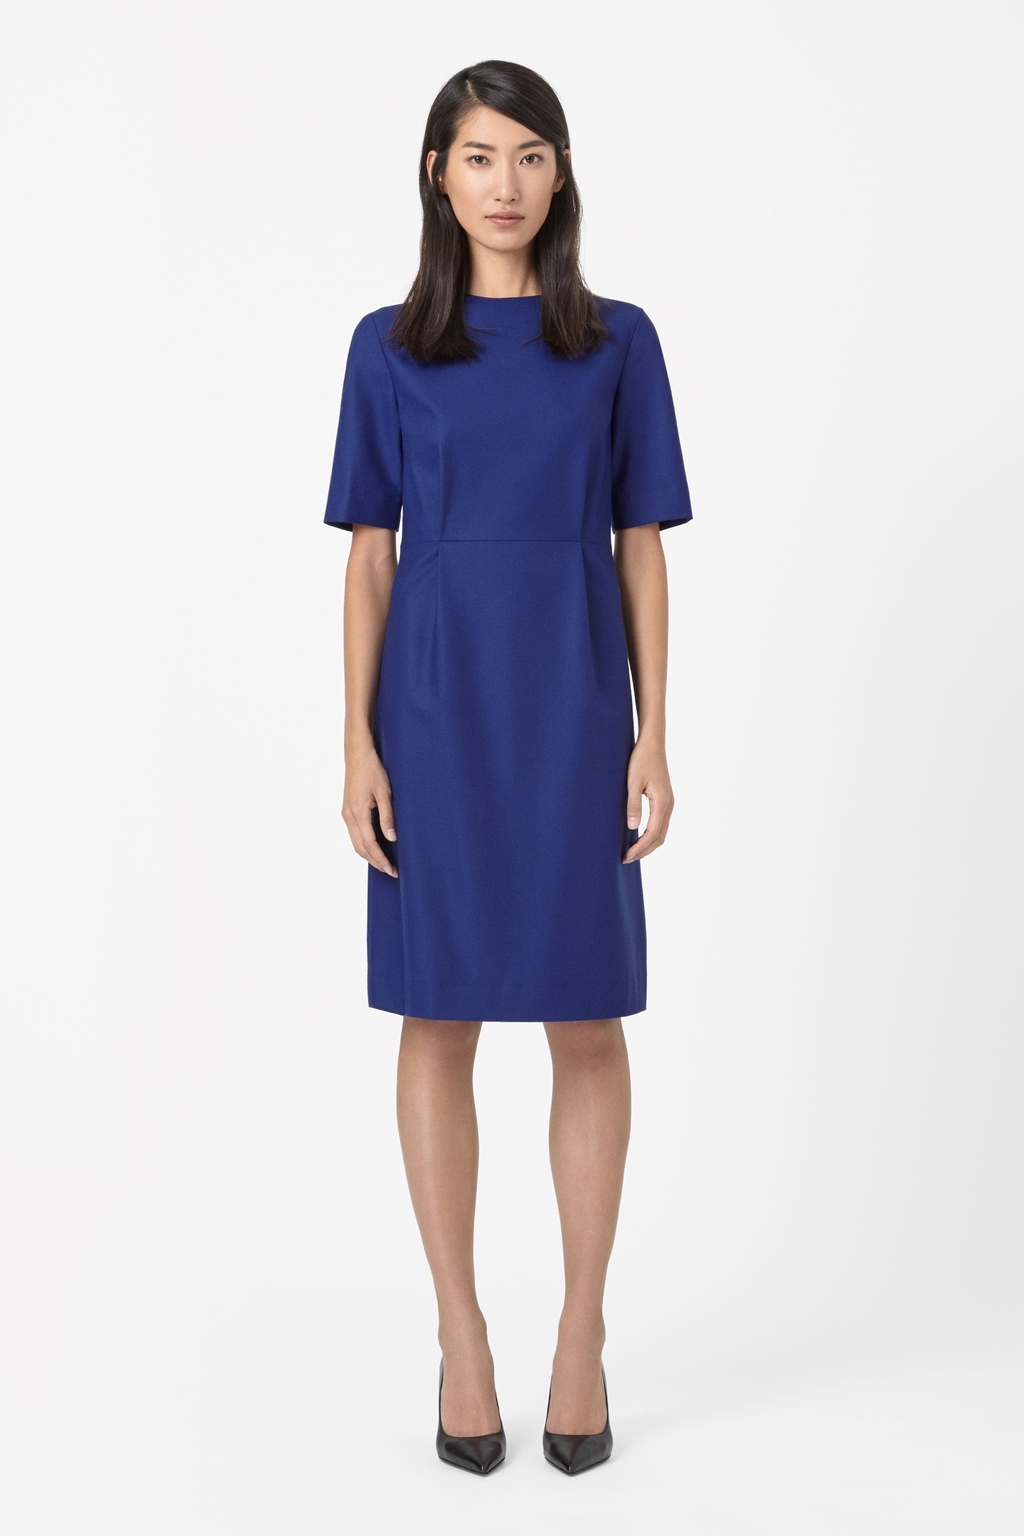 High Neck Pleated Dress - style: shift; fit: tailored/fitted; pattern: plain; predominant colour: navy; occasions: work, occasion, creative work; length: on the knee; fibres: wool - stretch; neckline: crew; sleeve length: short sleeve; sleeve style: standard; pattern type: fabric; texture group: woven light midweight; trends: zesty shades, minimal sleek; season: a/w 2014; wardrobe: investment